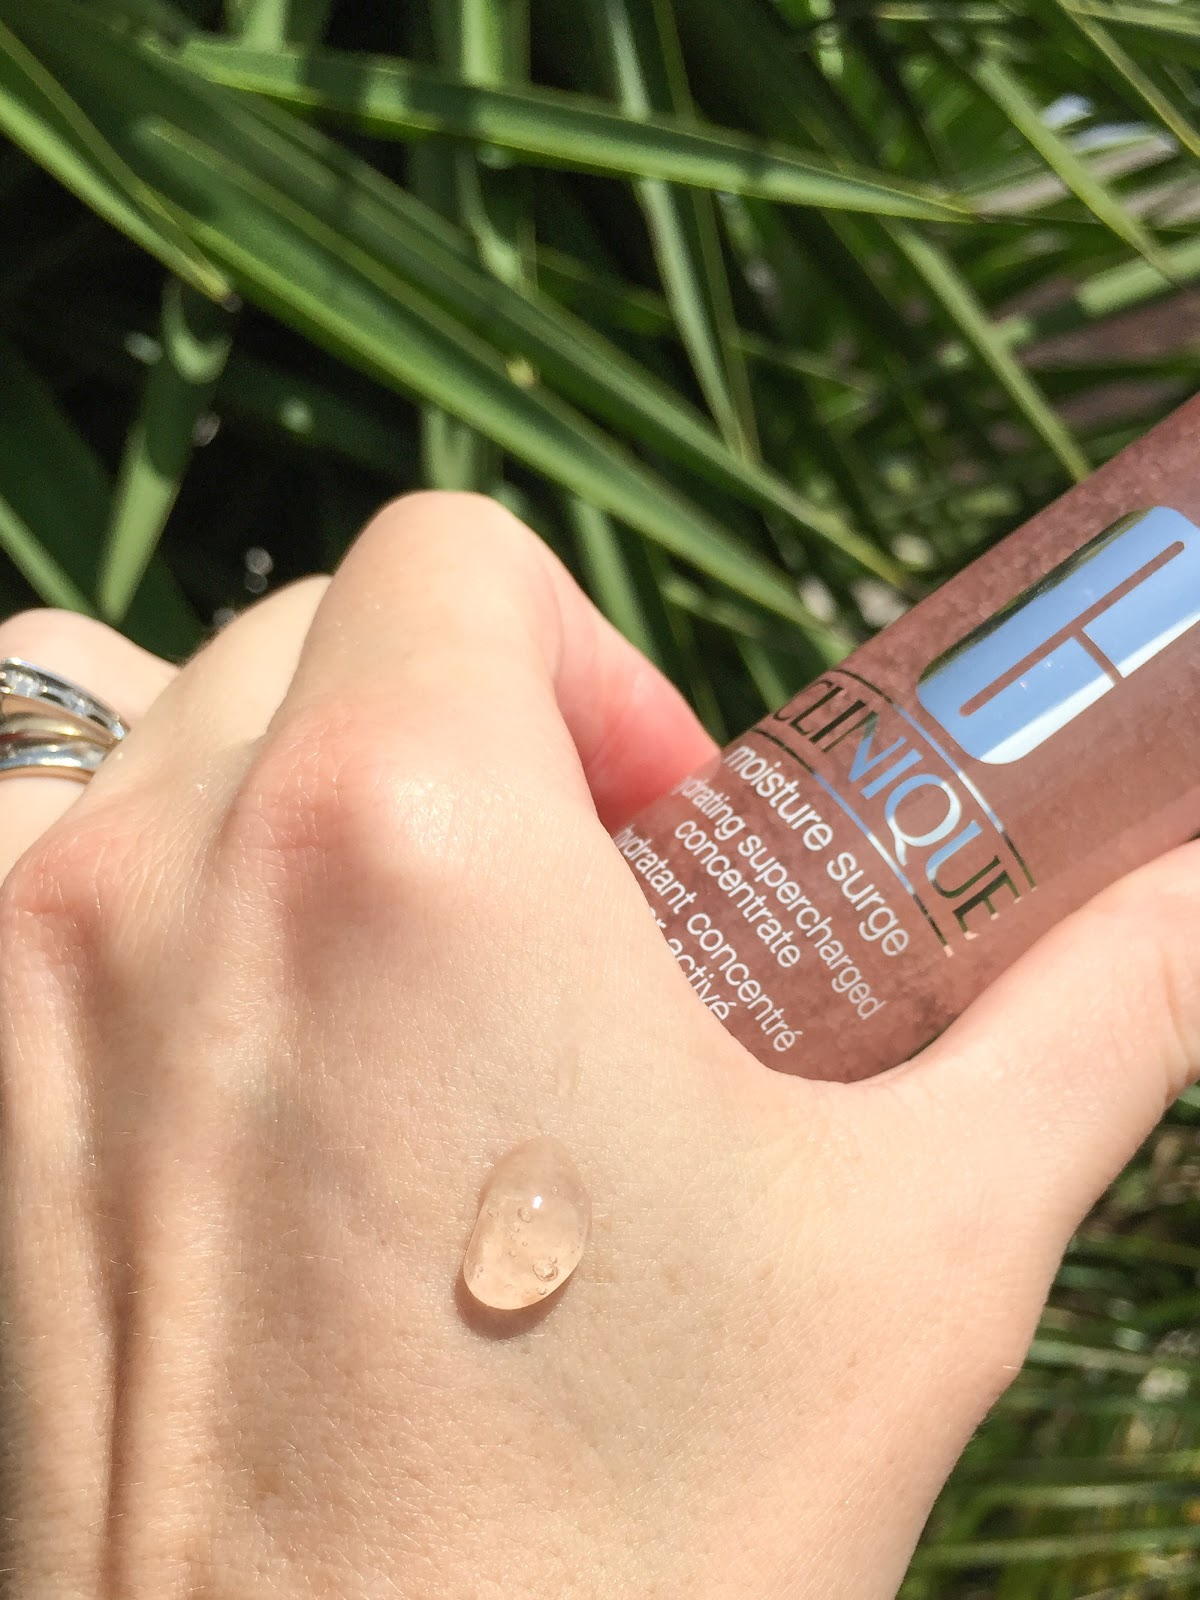 Clinique Moisture Surge Hydrating Supercharged Concentrate Review The Beauty Endeavor